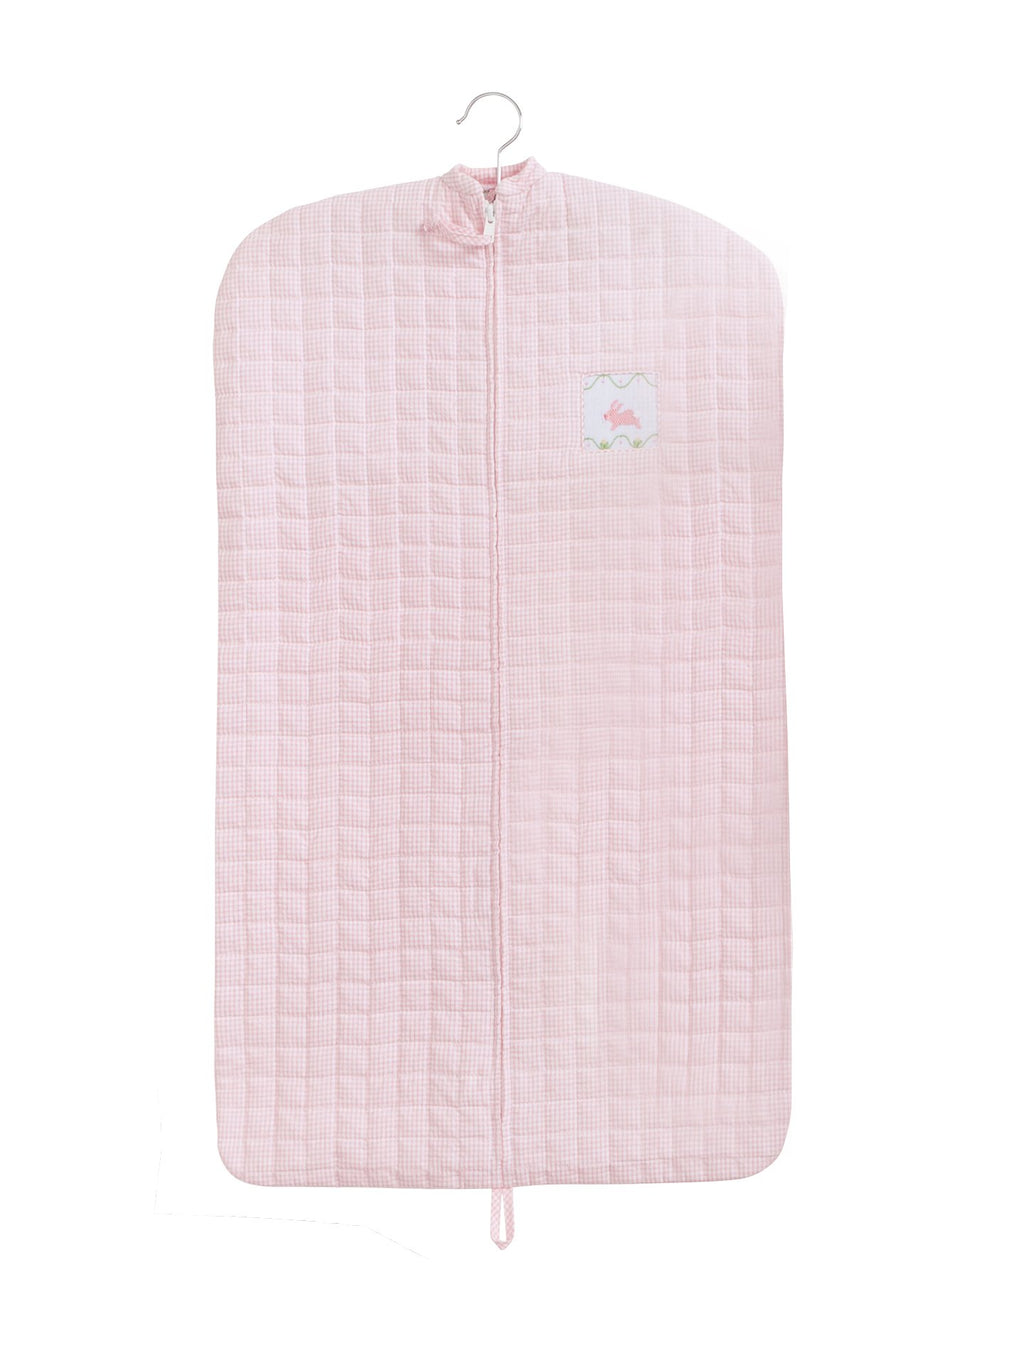 Quilted Pink Bunny Garment Bag - Born Childrens Boutique